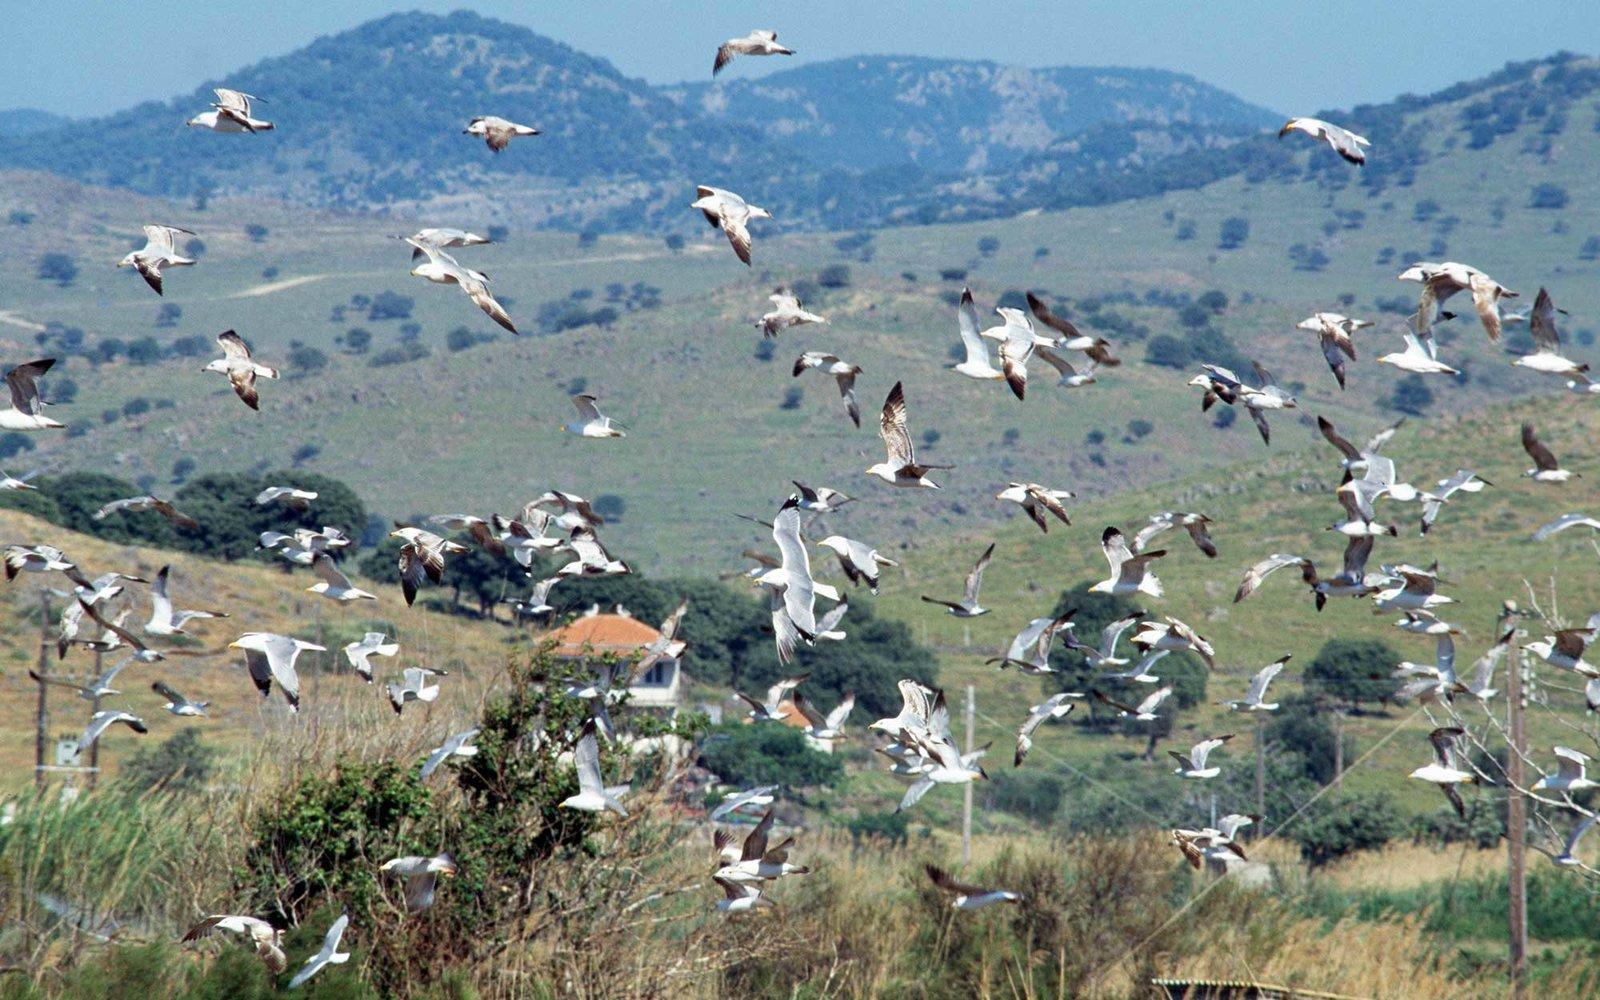 GREECE - JULY 24: Flock of seagulls flying, Lesvos island, Greece. (Photo by DeAgostini/Getty Images)